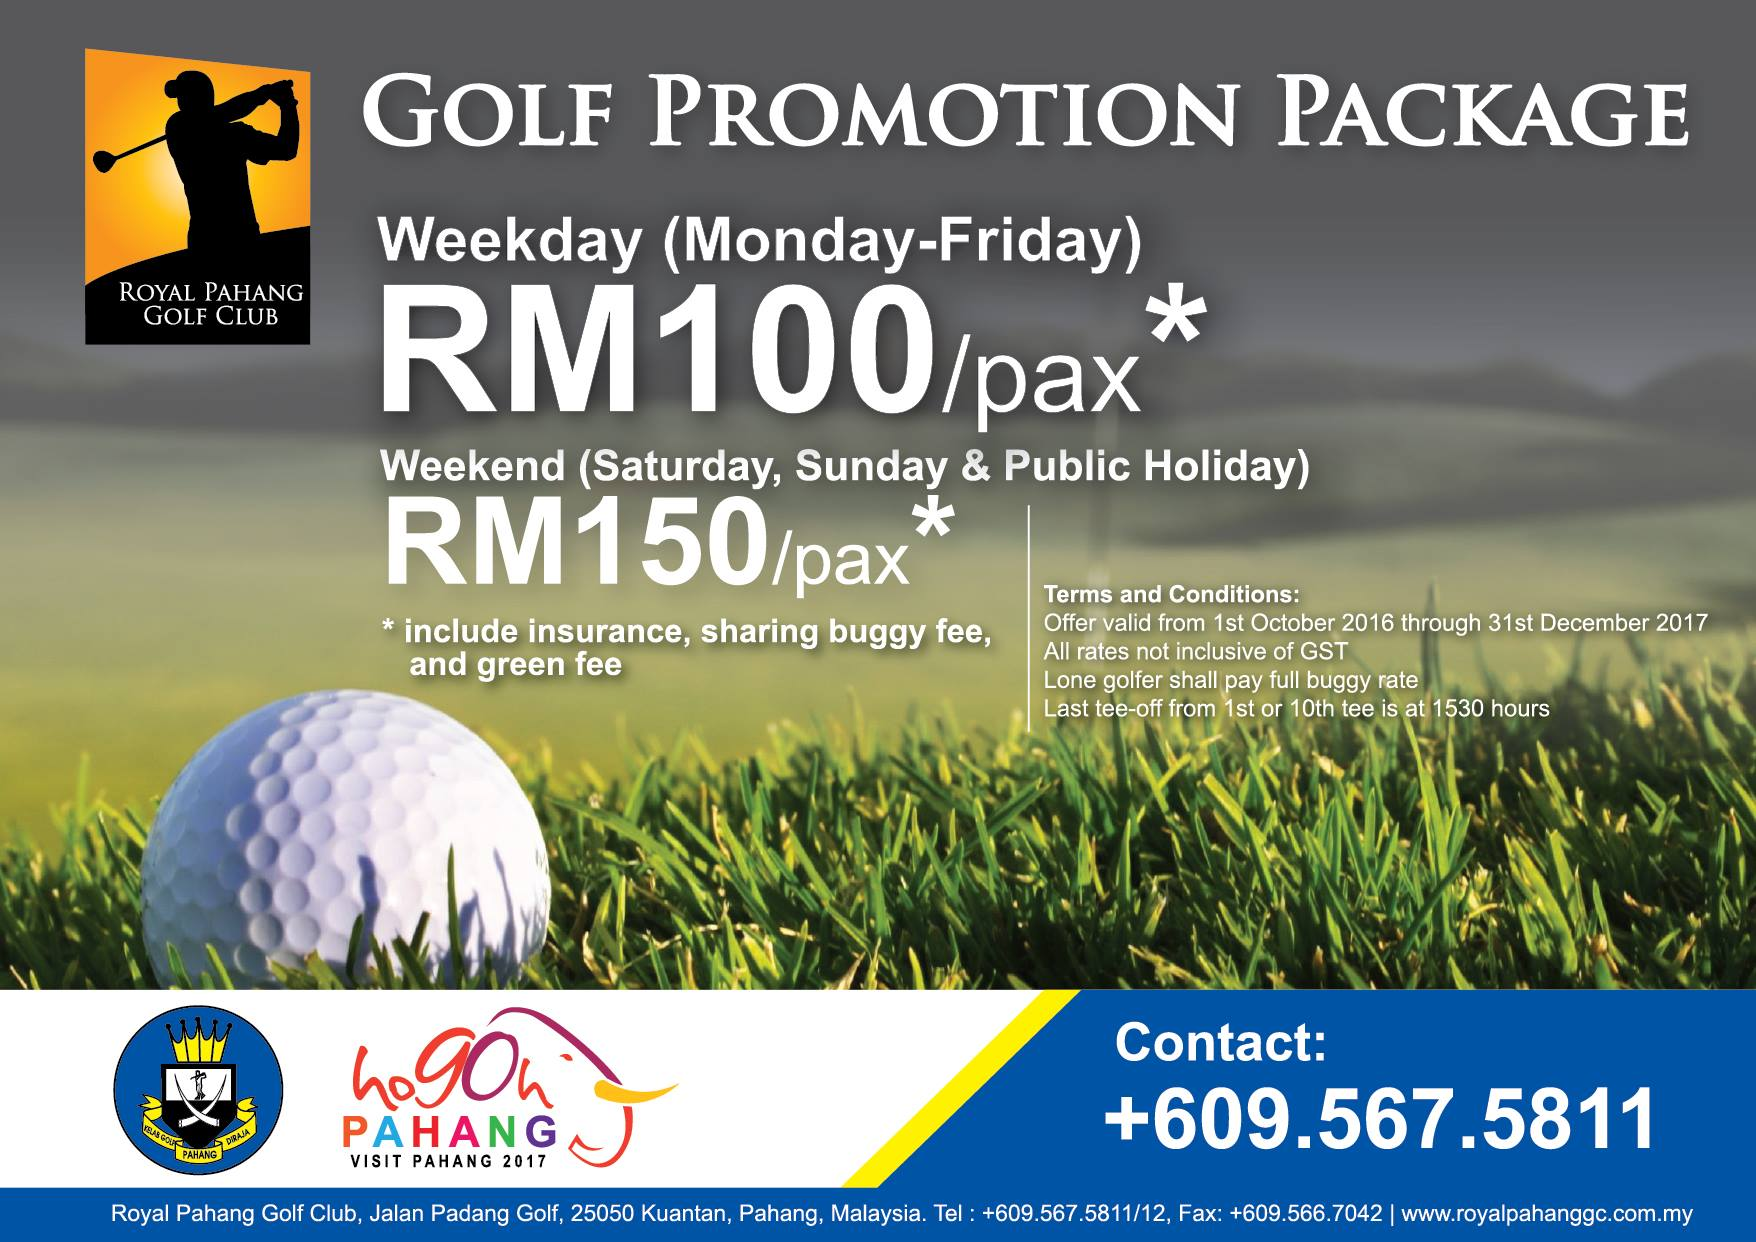 Visit Pahang 2017 Promotions